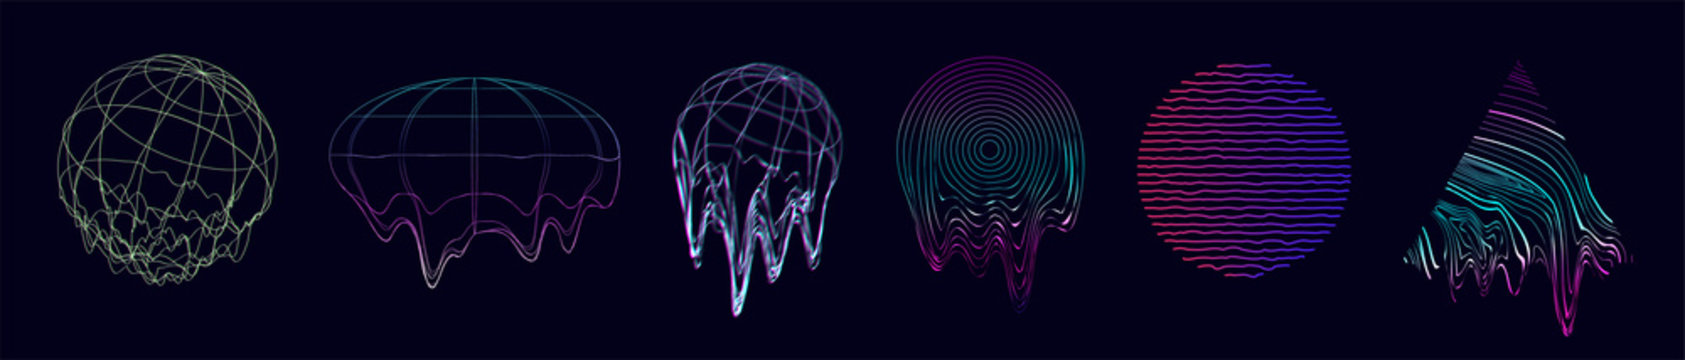 Universal glitch shapes set. Trendy digital retrofuturism vaporwave. 3d circles and triangles with the effect of liquid, glitch, destruction. Abstract elements for web, poster, covers. Memphis set